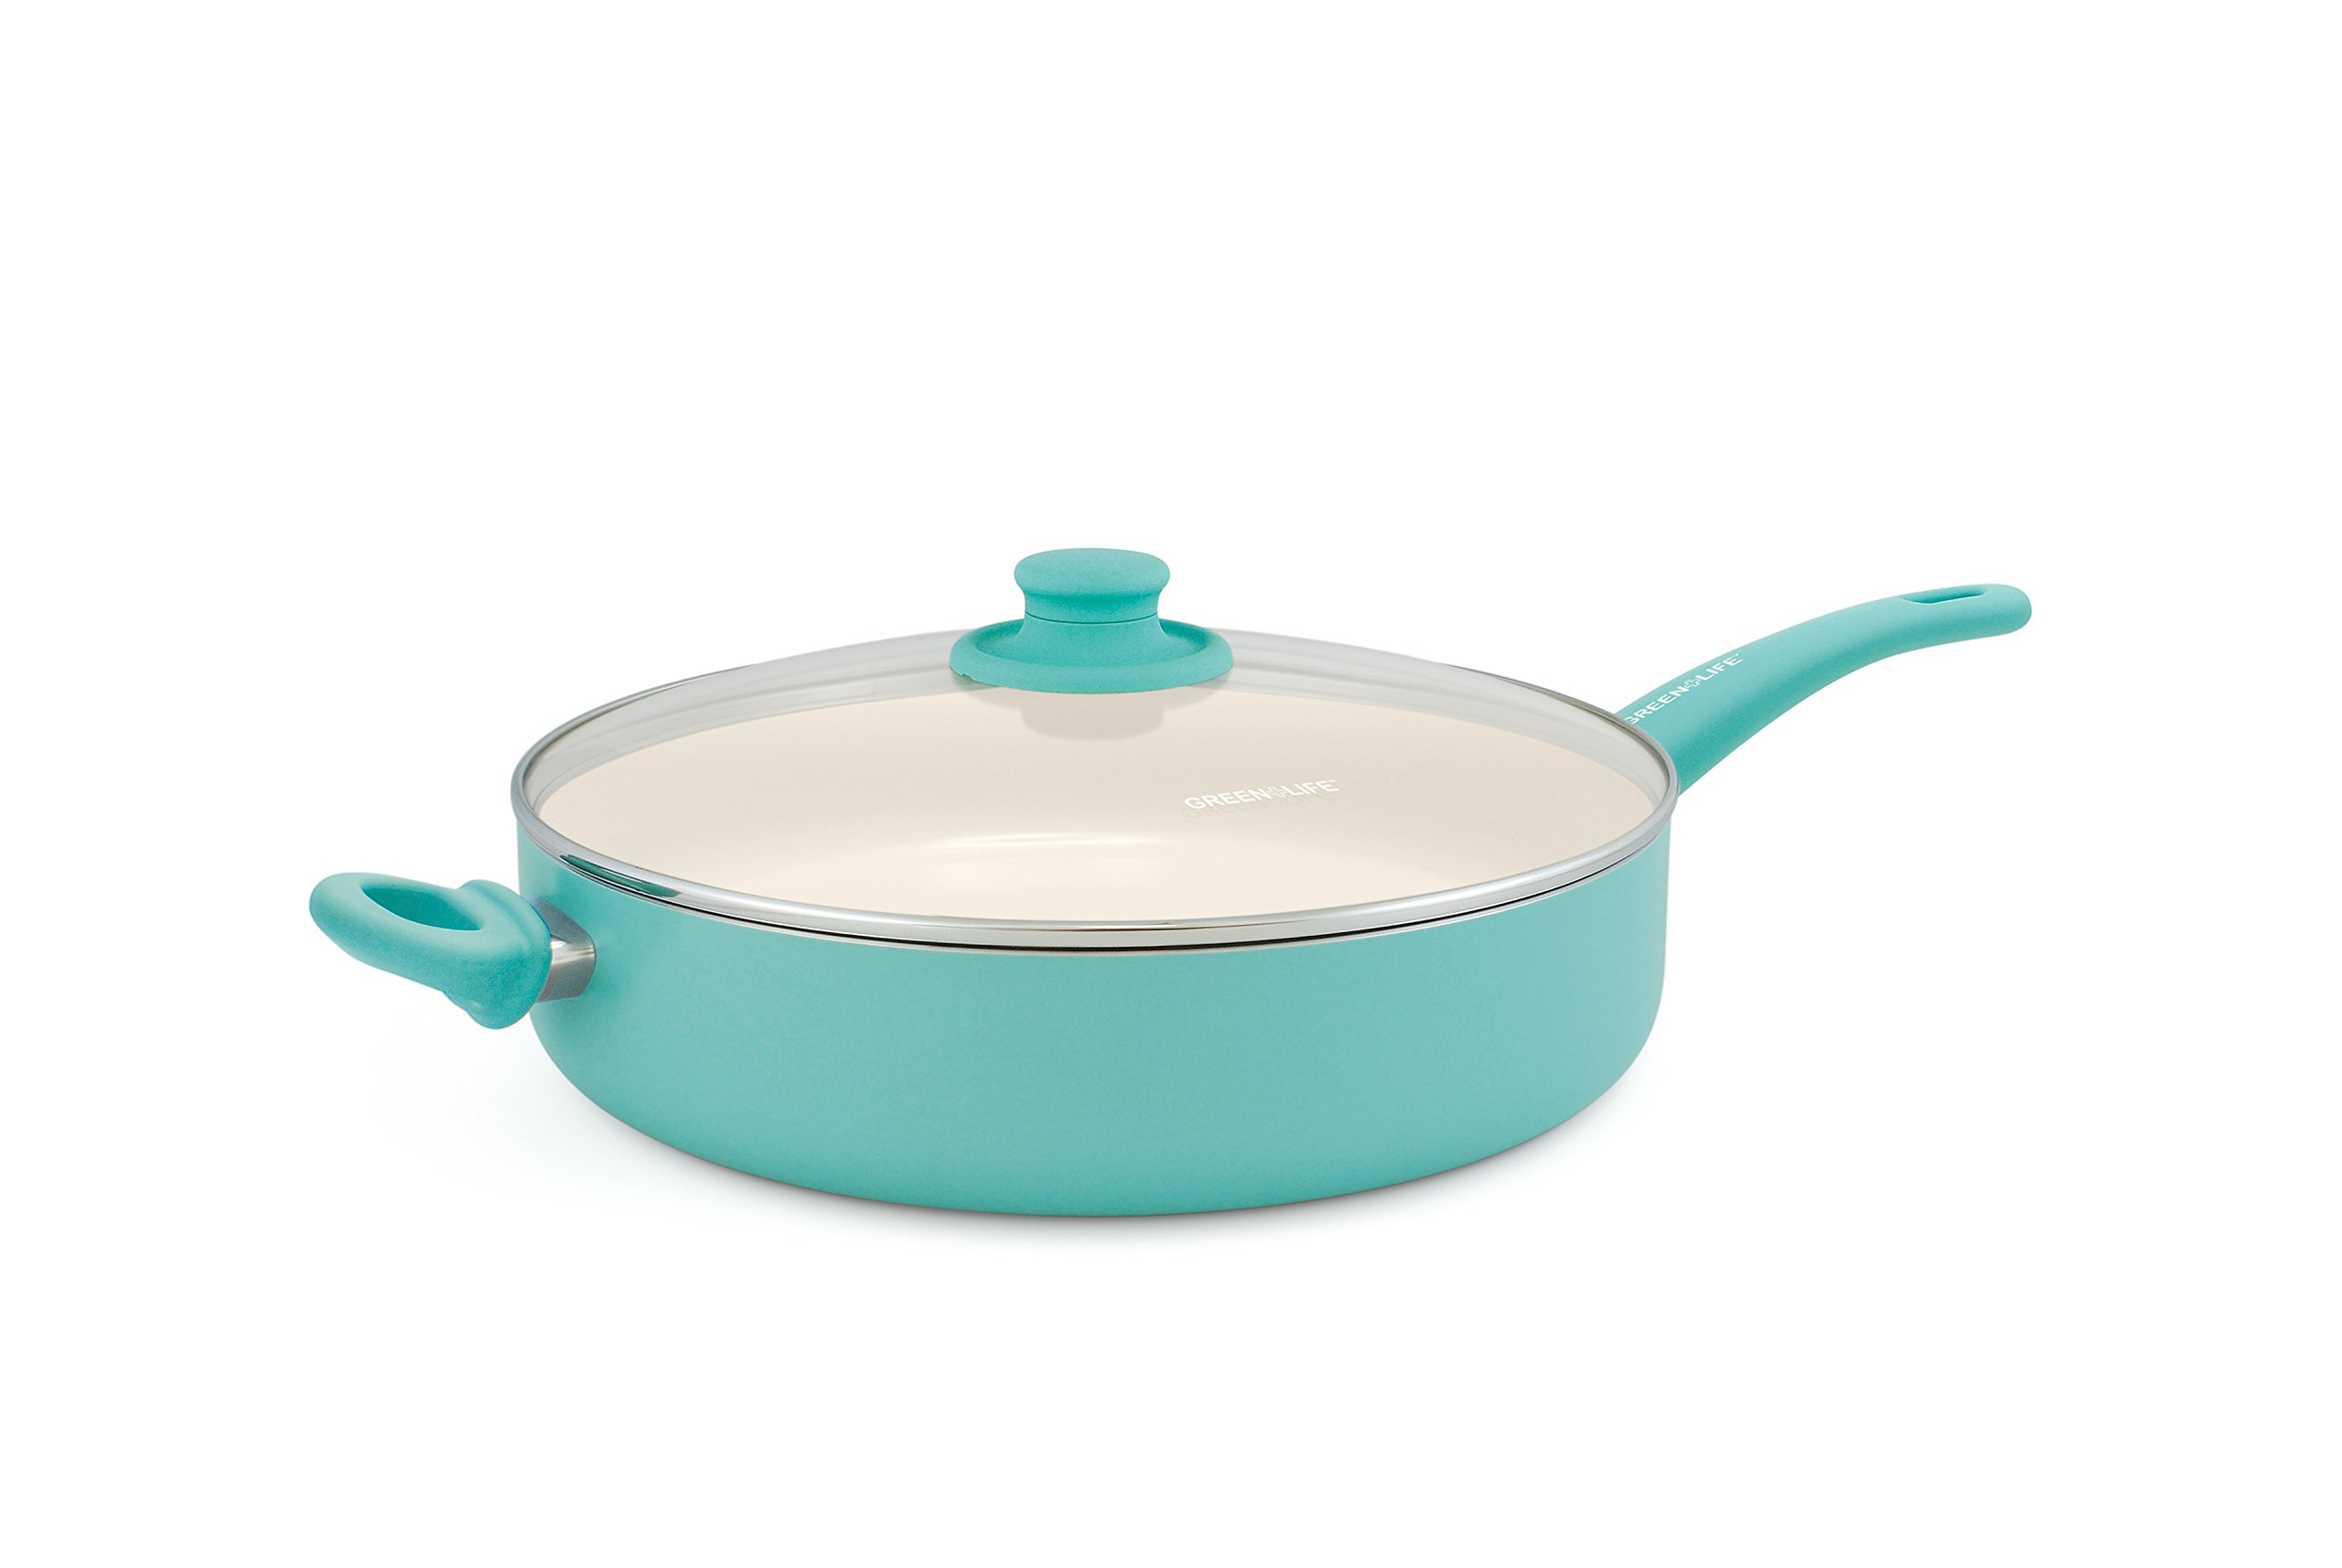 GreenLife Soft Grip 12'' Ceramic Non-Stick Covered Jumbo Sauté Pan, Turquoise